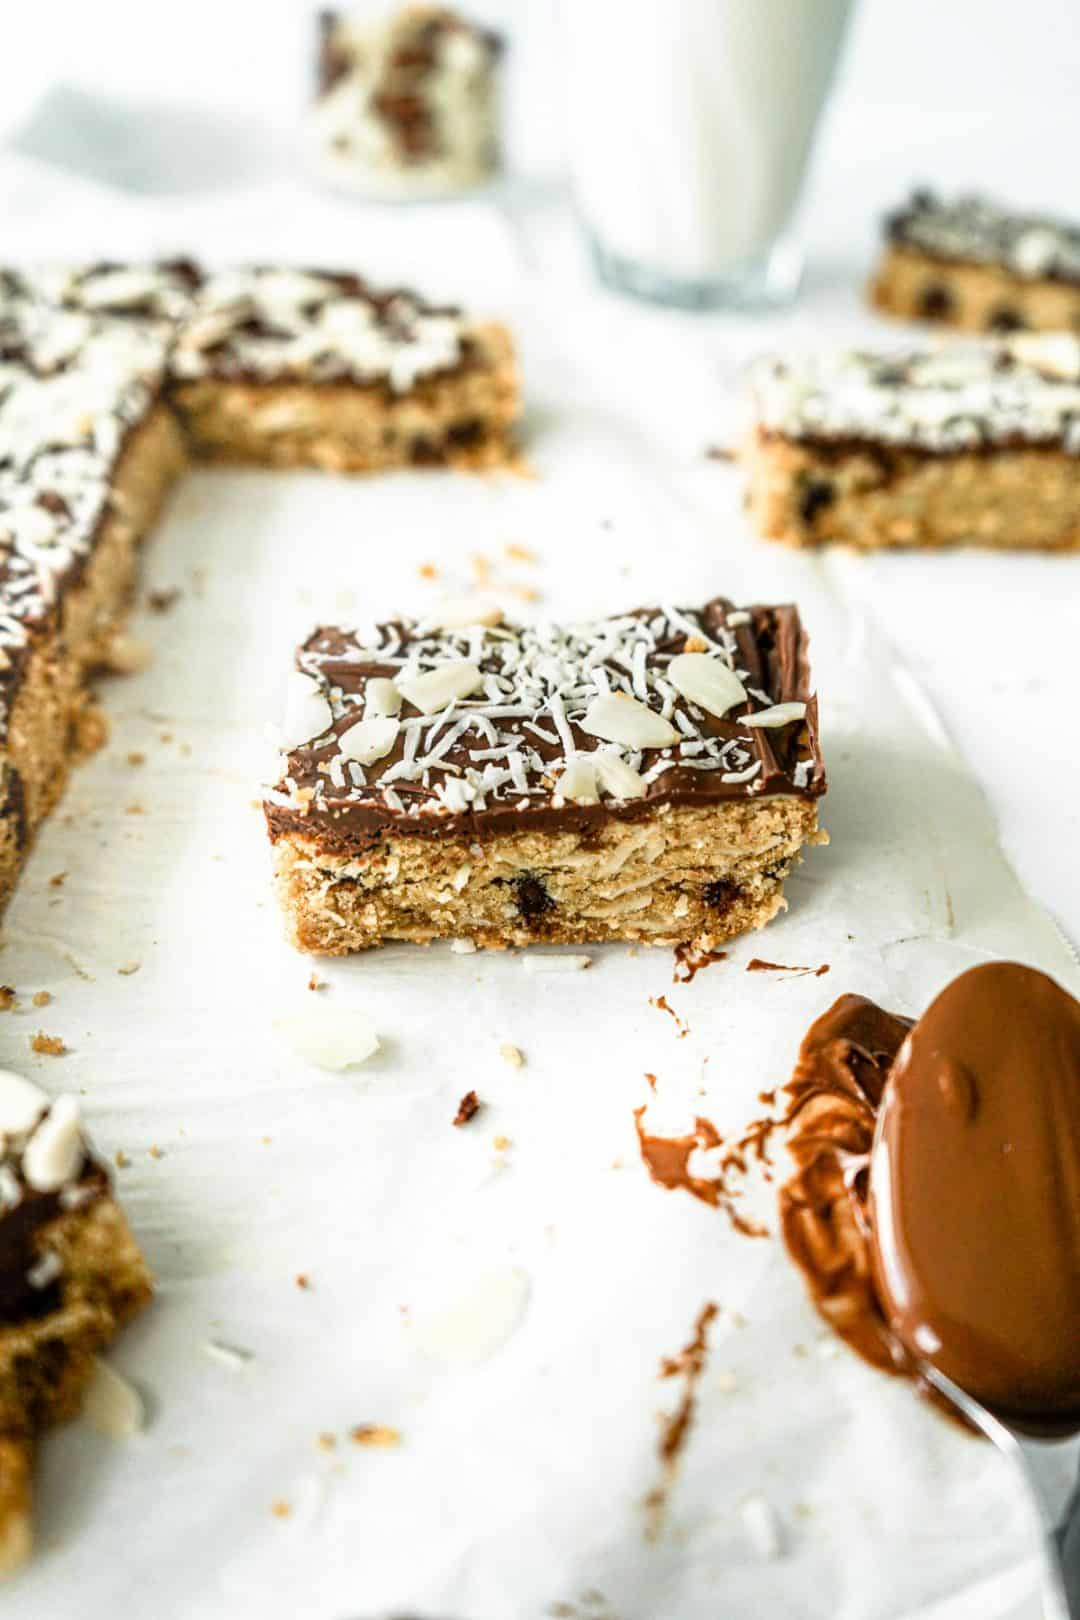 An almond joy cookie bar with a spoon of melted chocolate in the bottom right corner and more almond joy cookie bars scattered around.